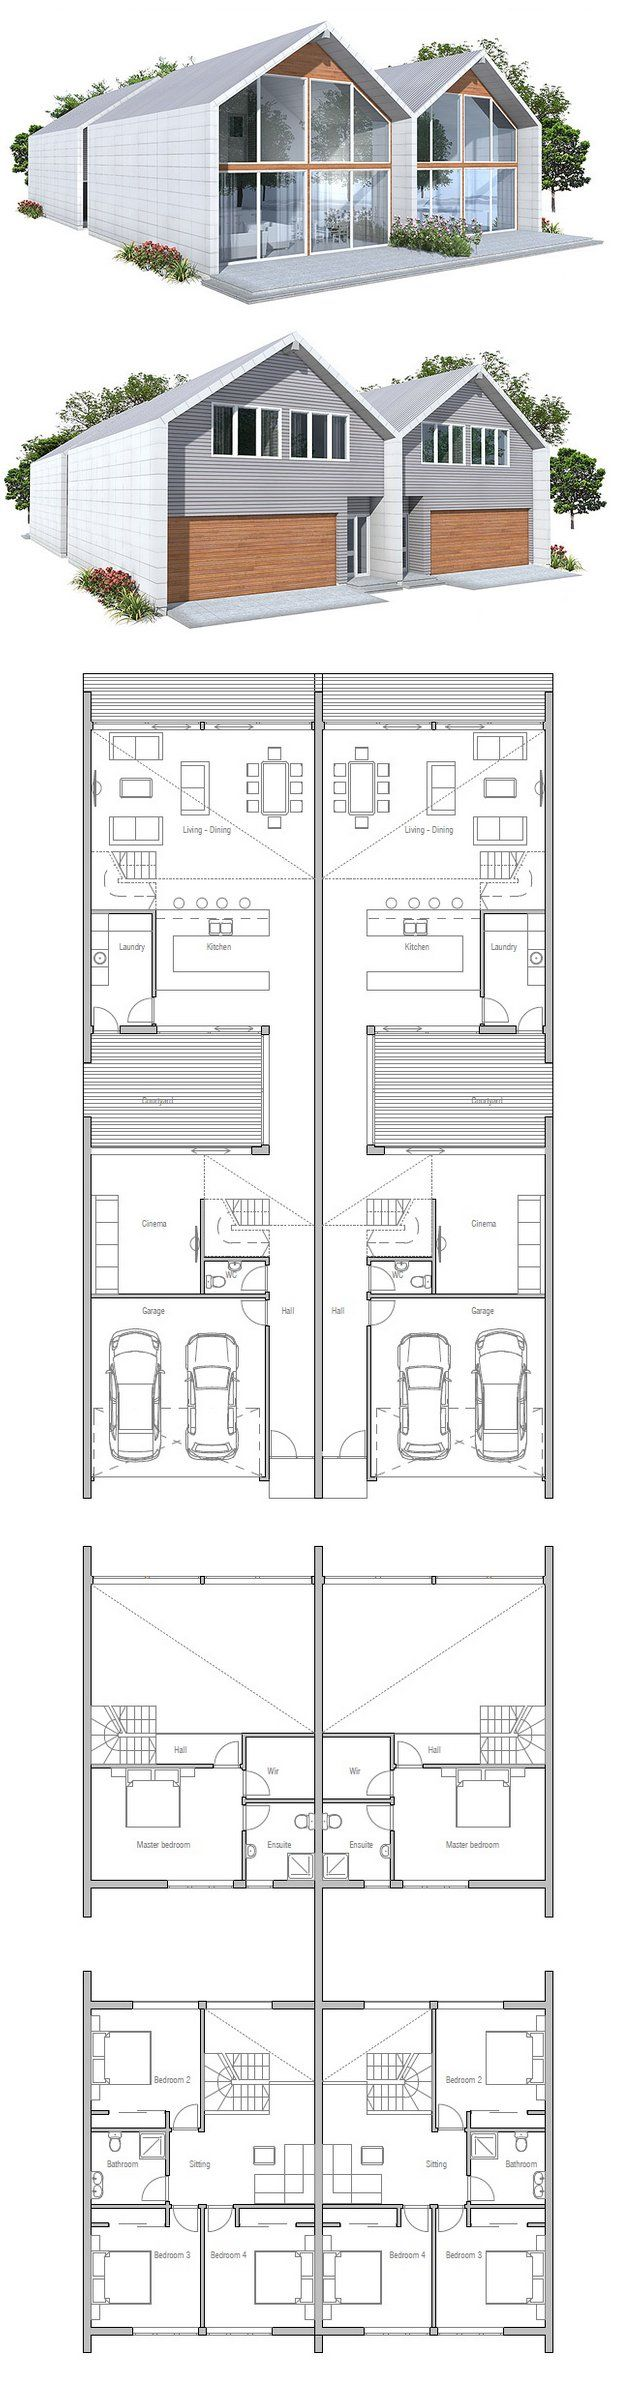 Duplex house plan to narrow lot 2 bed plans for Narrow duplex plans